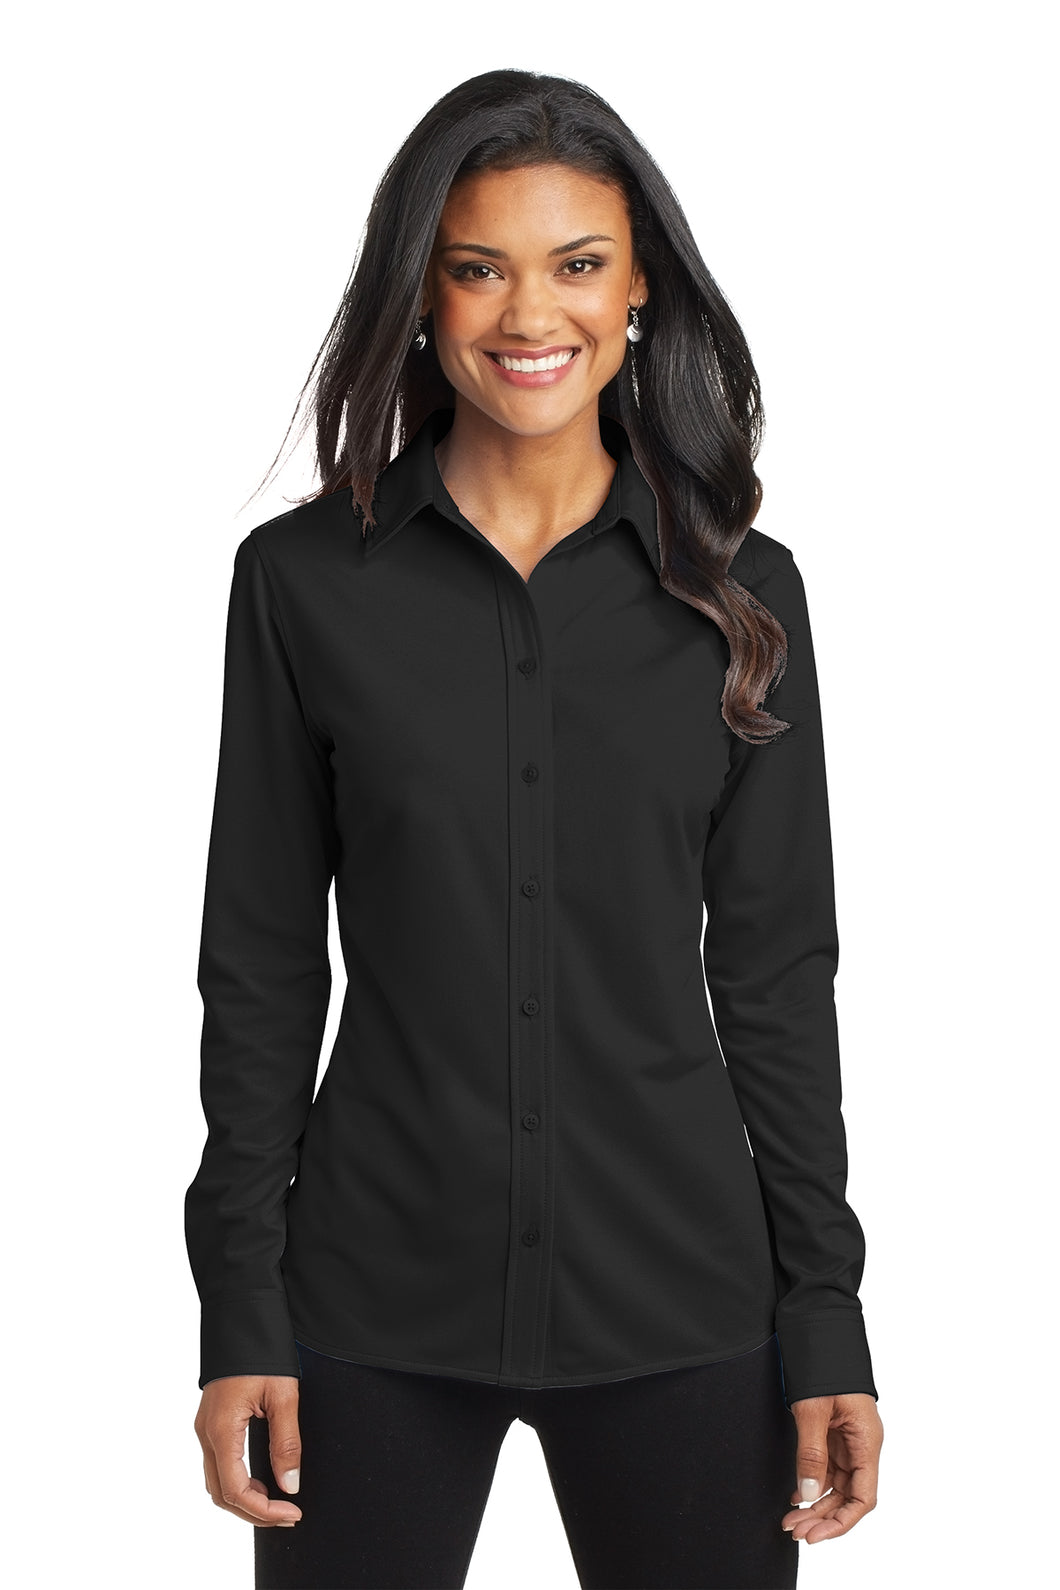 Quantum Long-Sleeve Women's Dress Shirt